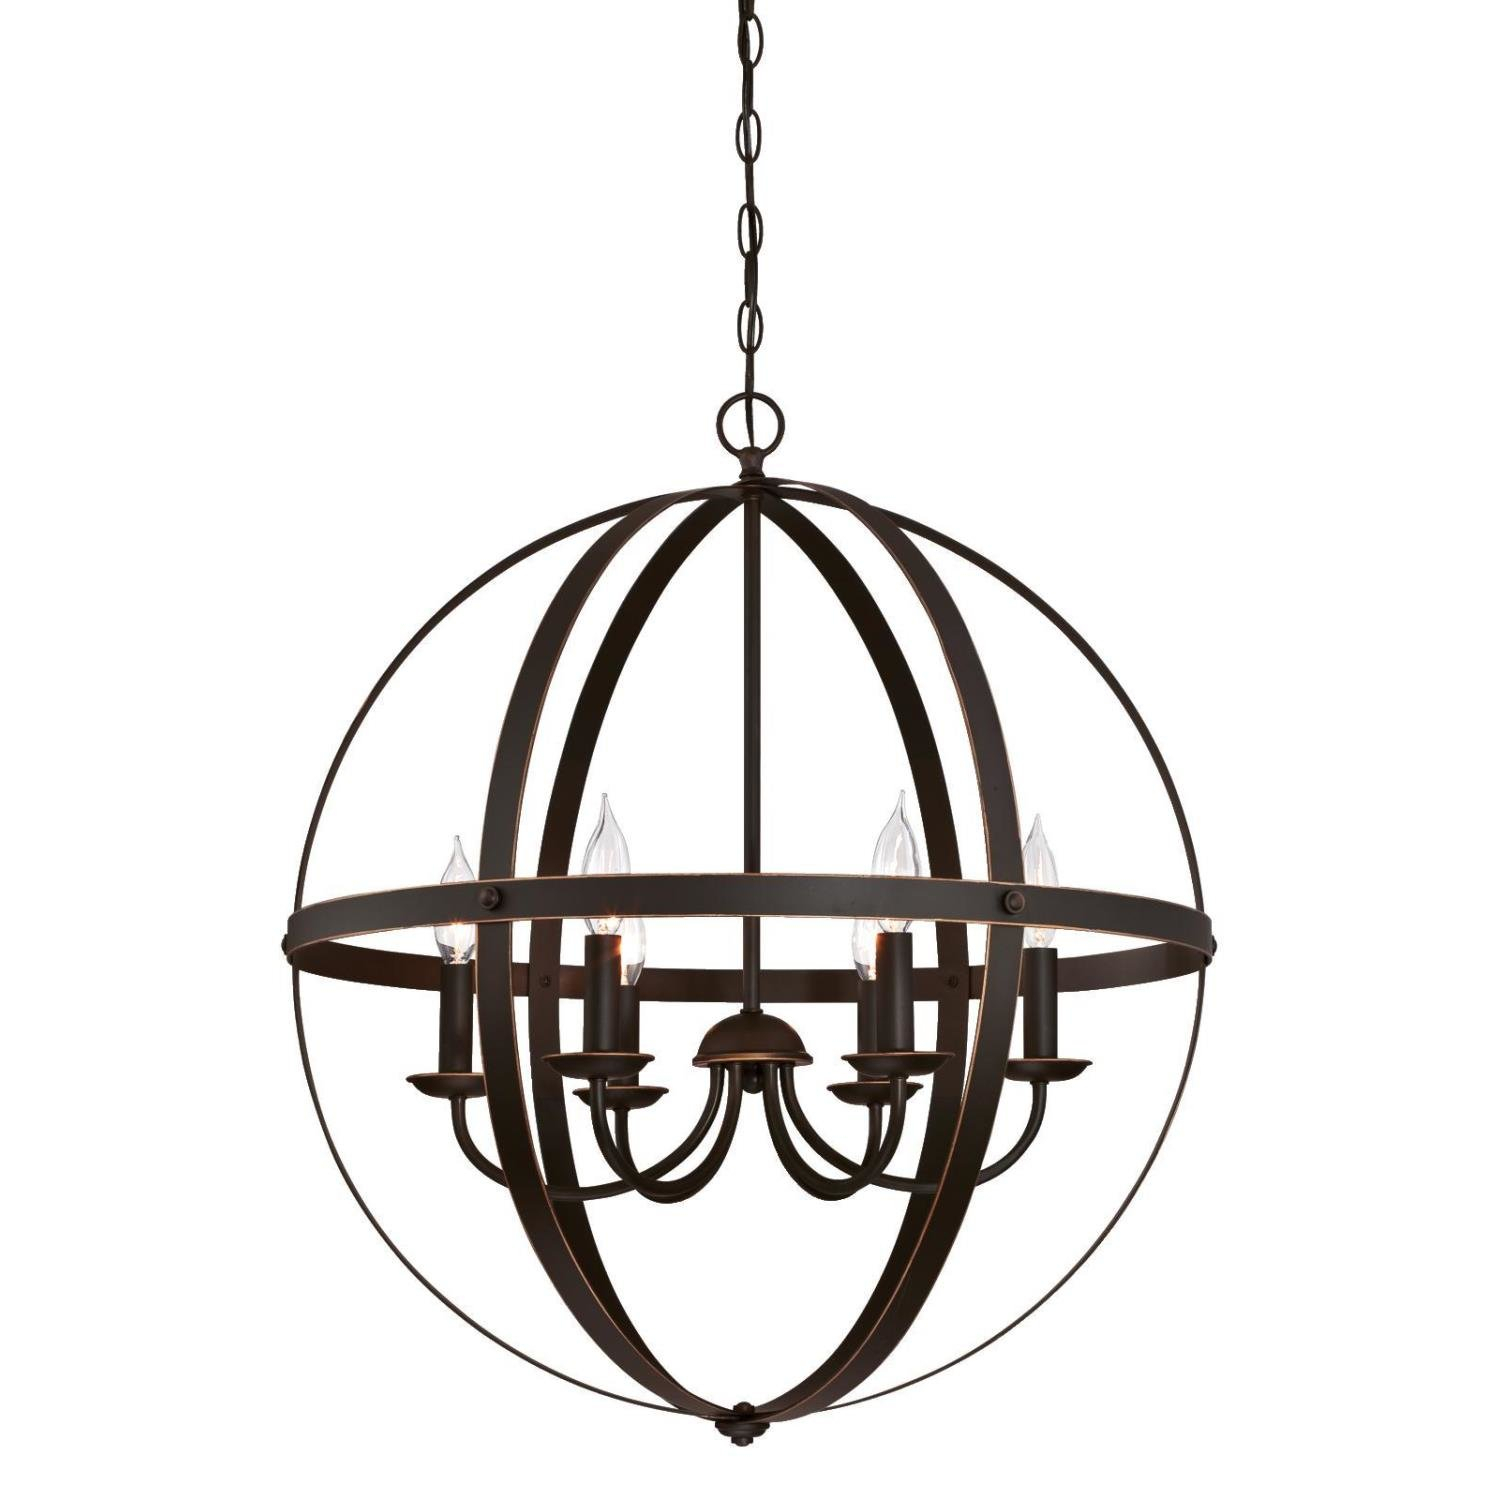 Joon 6-Light Globe Chandelier with Joon 6-Light Globe Chandeliers (Image 14 of 30)